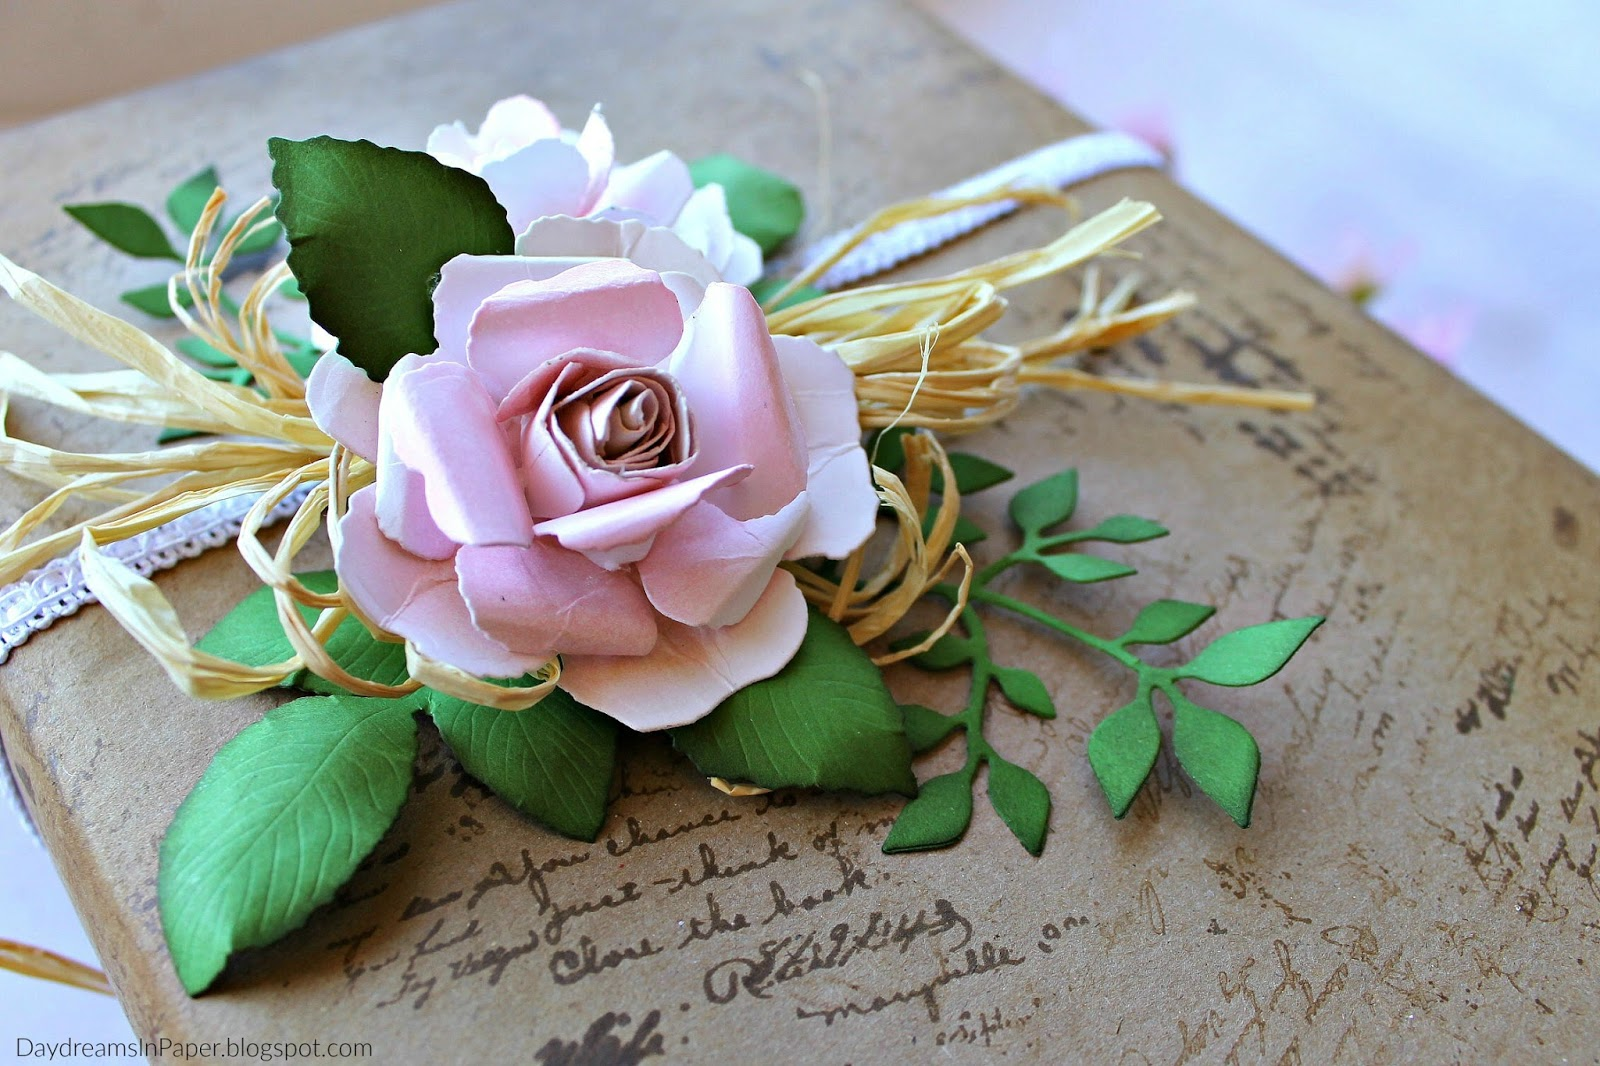 Tutorial create a beautiful rose daydreams in paper it is exquisite and you can find it here my roses are no where near as beautiful as hers but with more practice i hope to get them to look just as izmirmasajfo